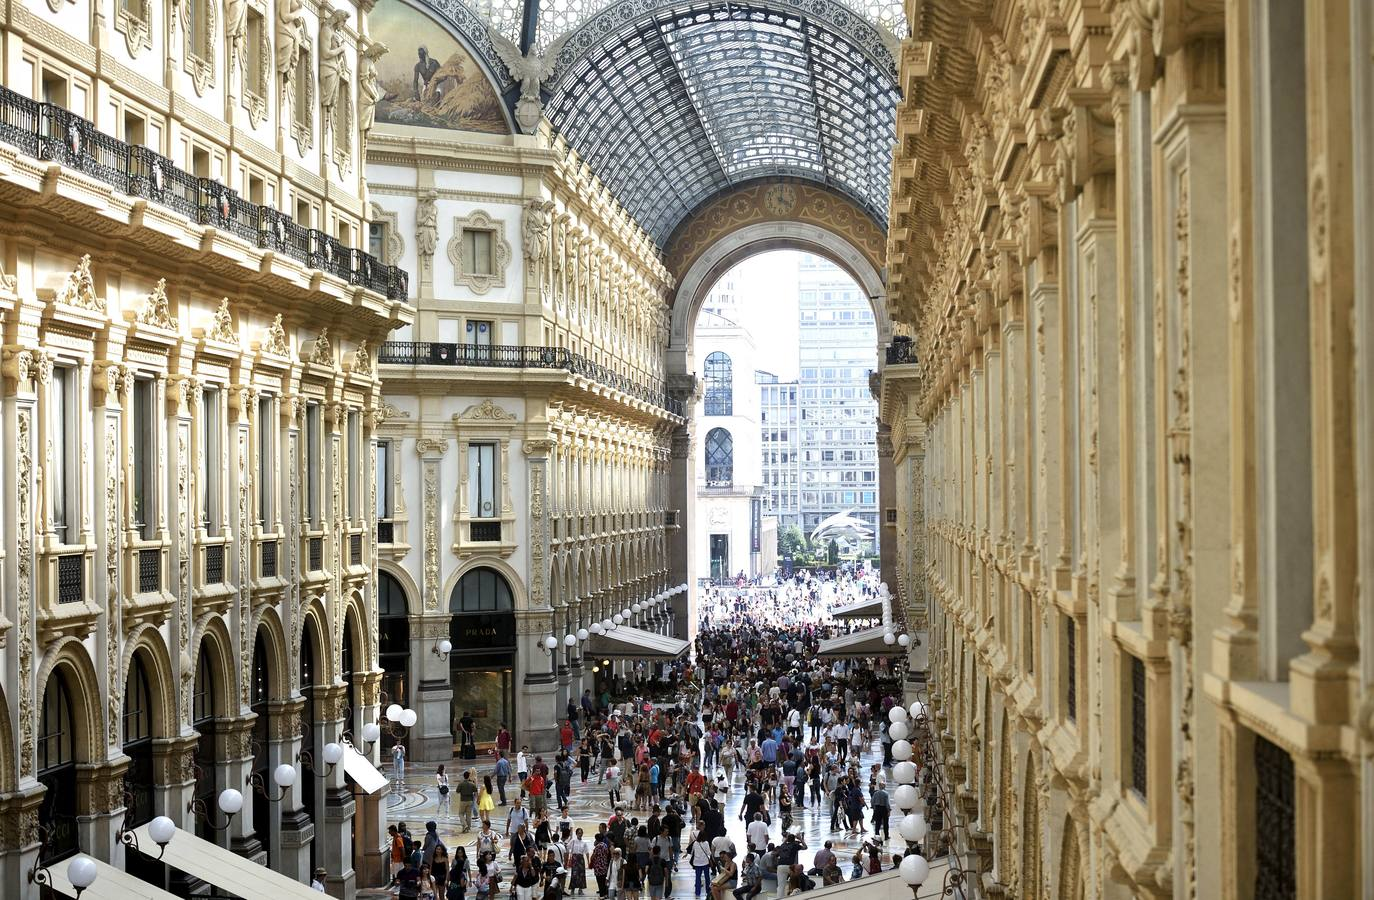 People walk along the Galleria Vittorio Emanuele II shopping mall in Milan, August 25, 2015. Long the ugly sister to Florence, Venice and Rome, Italy's business capital Milan is enjoying a renaissance, its once drab skyline coming to life and a new creative vibrancy emerging. Picture taken August 25, 2015. To match Feature ITALY-MILAN/ REUTERS/Flavio Lo Scalzo